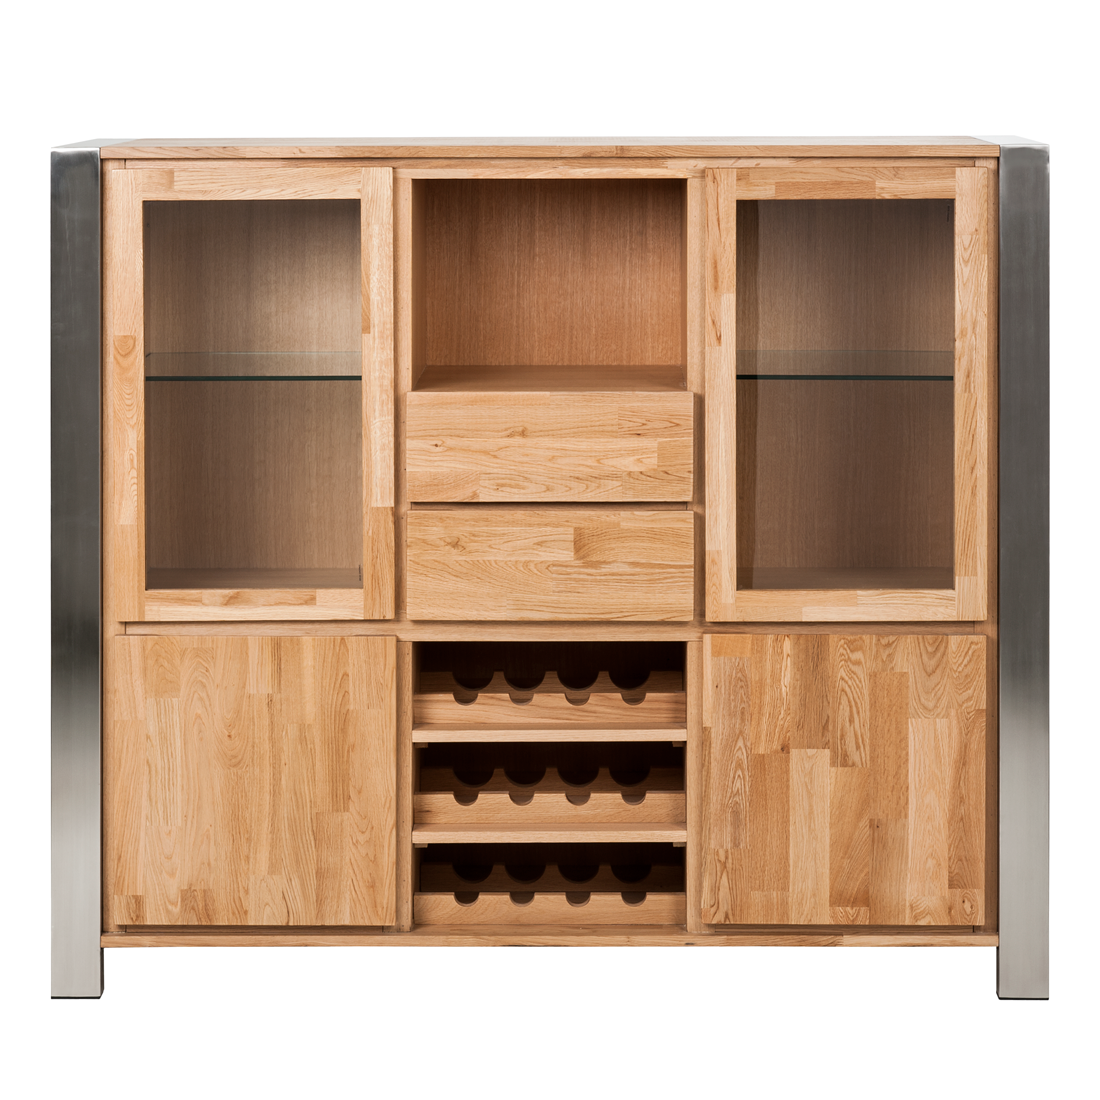 weinbar eiche massivholz edelstahl weinregal weinschrank. Black Bedroom Furniture Sets. Home Design Ideas